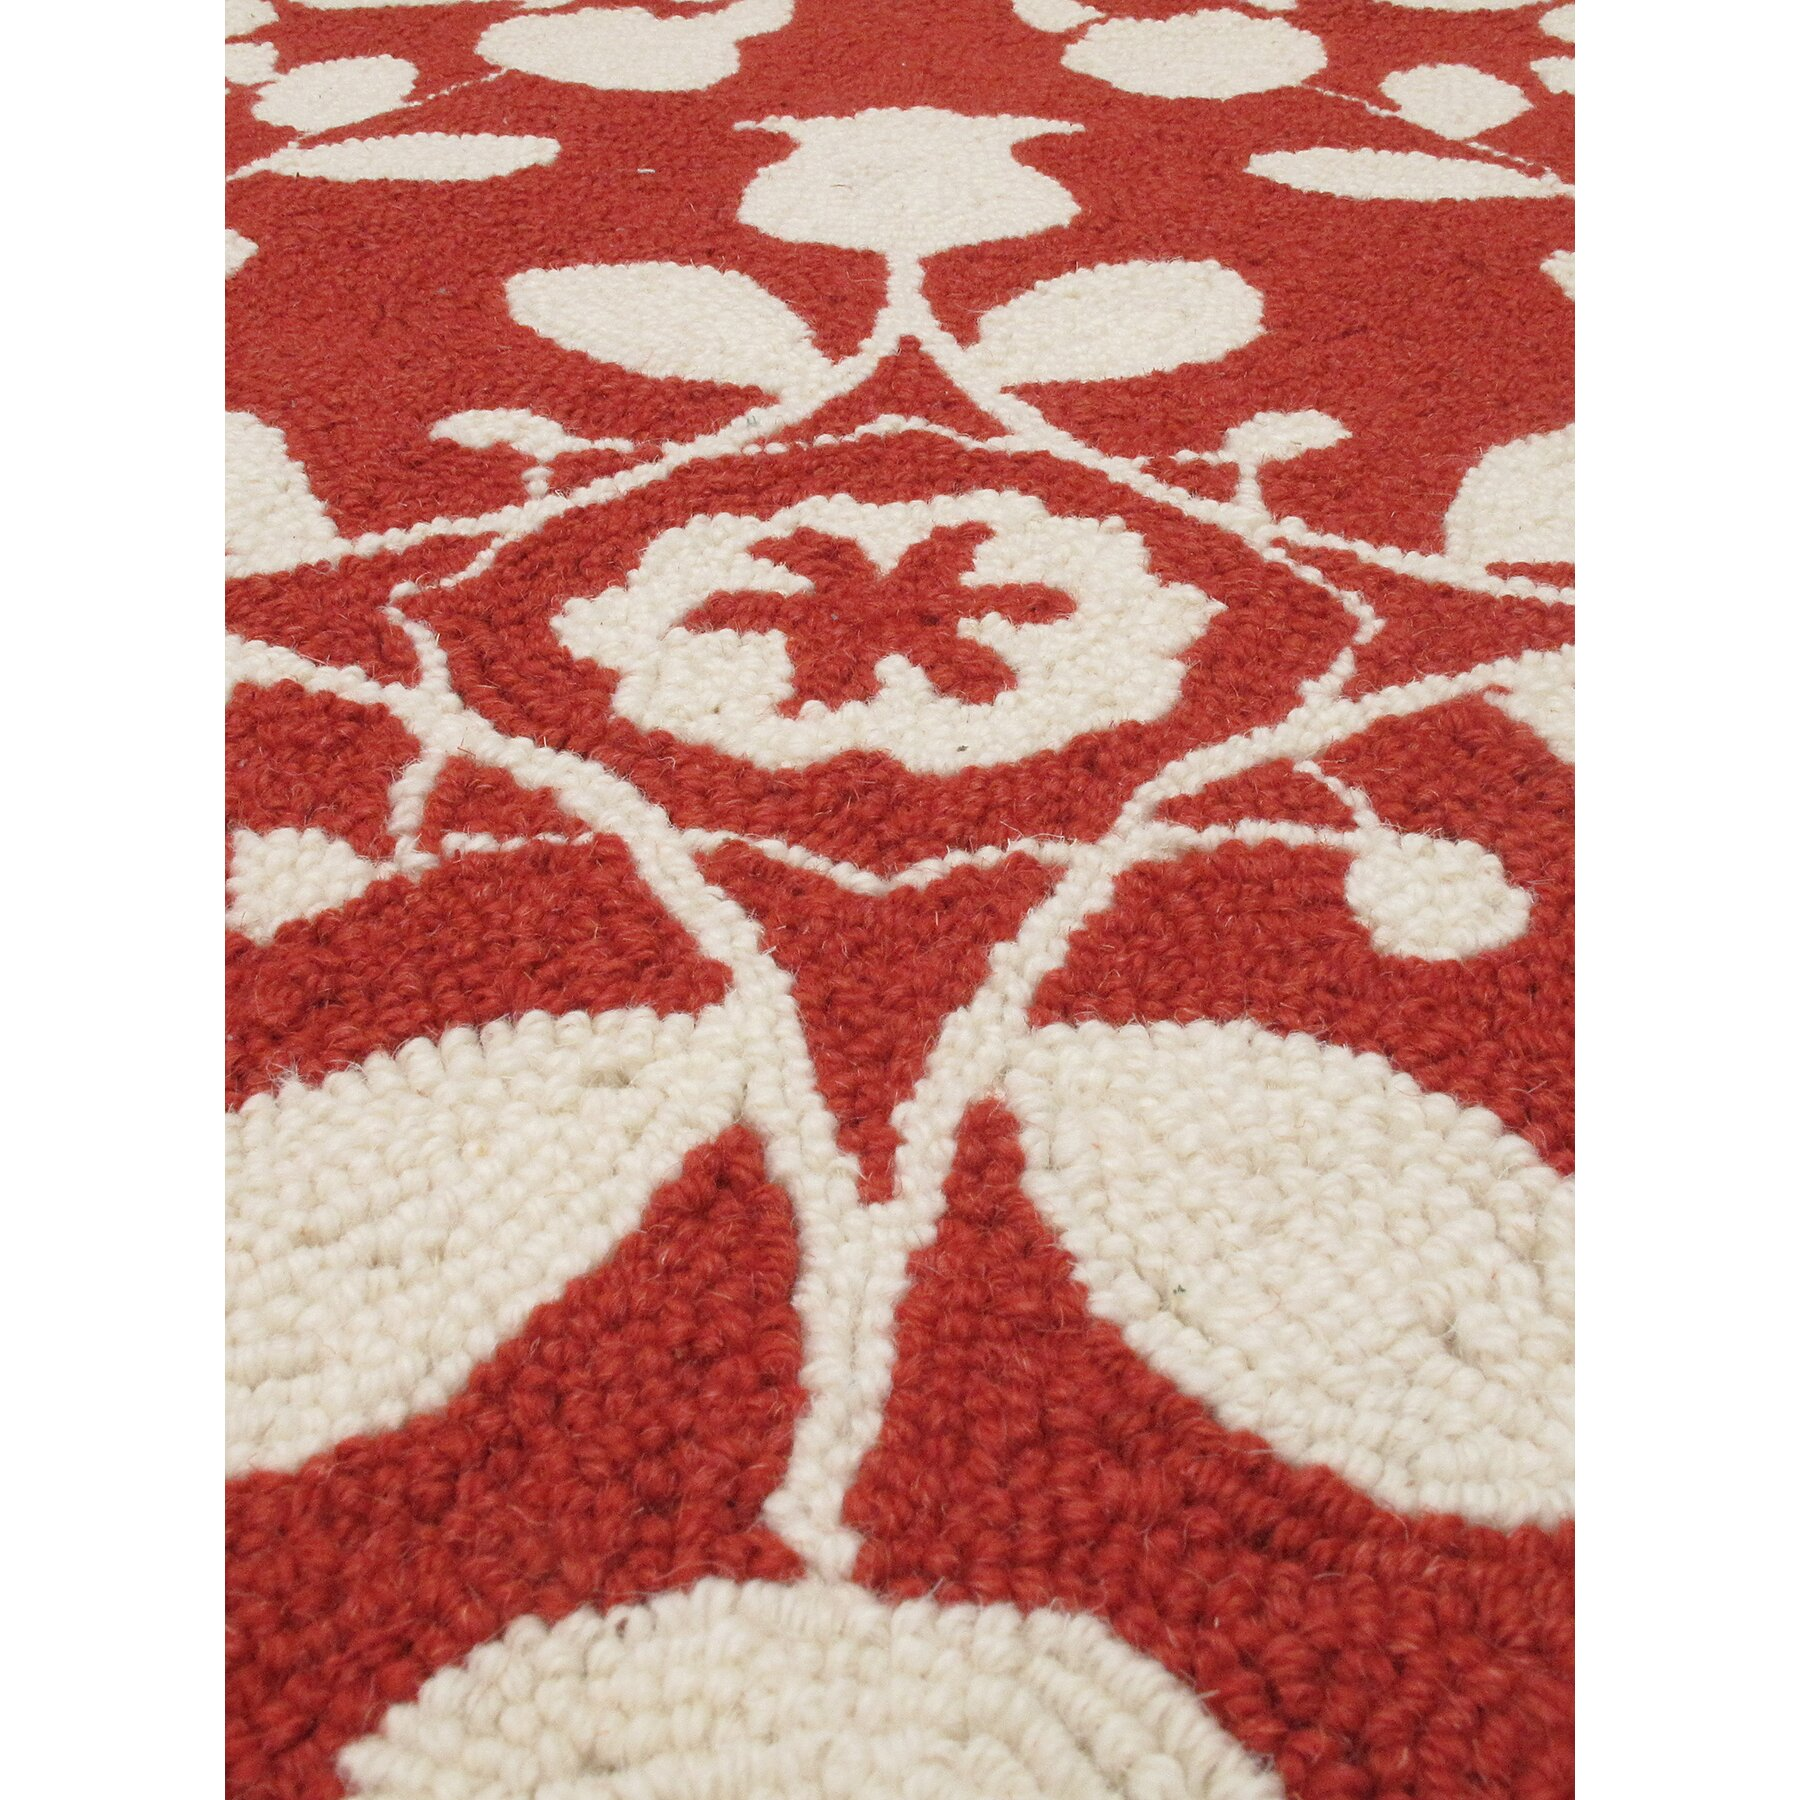 Ecarpetgallery samarkand cream red abstract area rug wayfair for Cream and red rugs